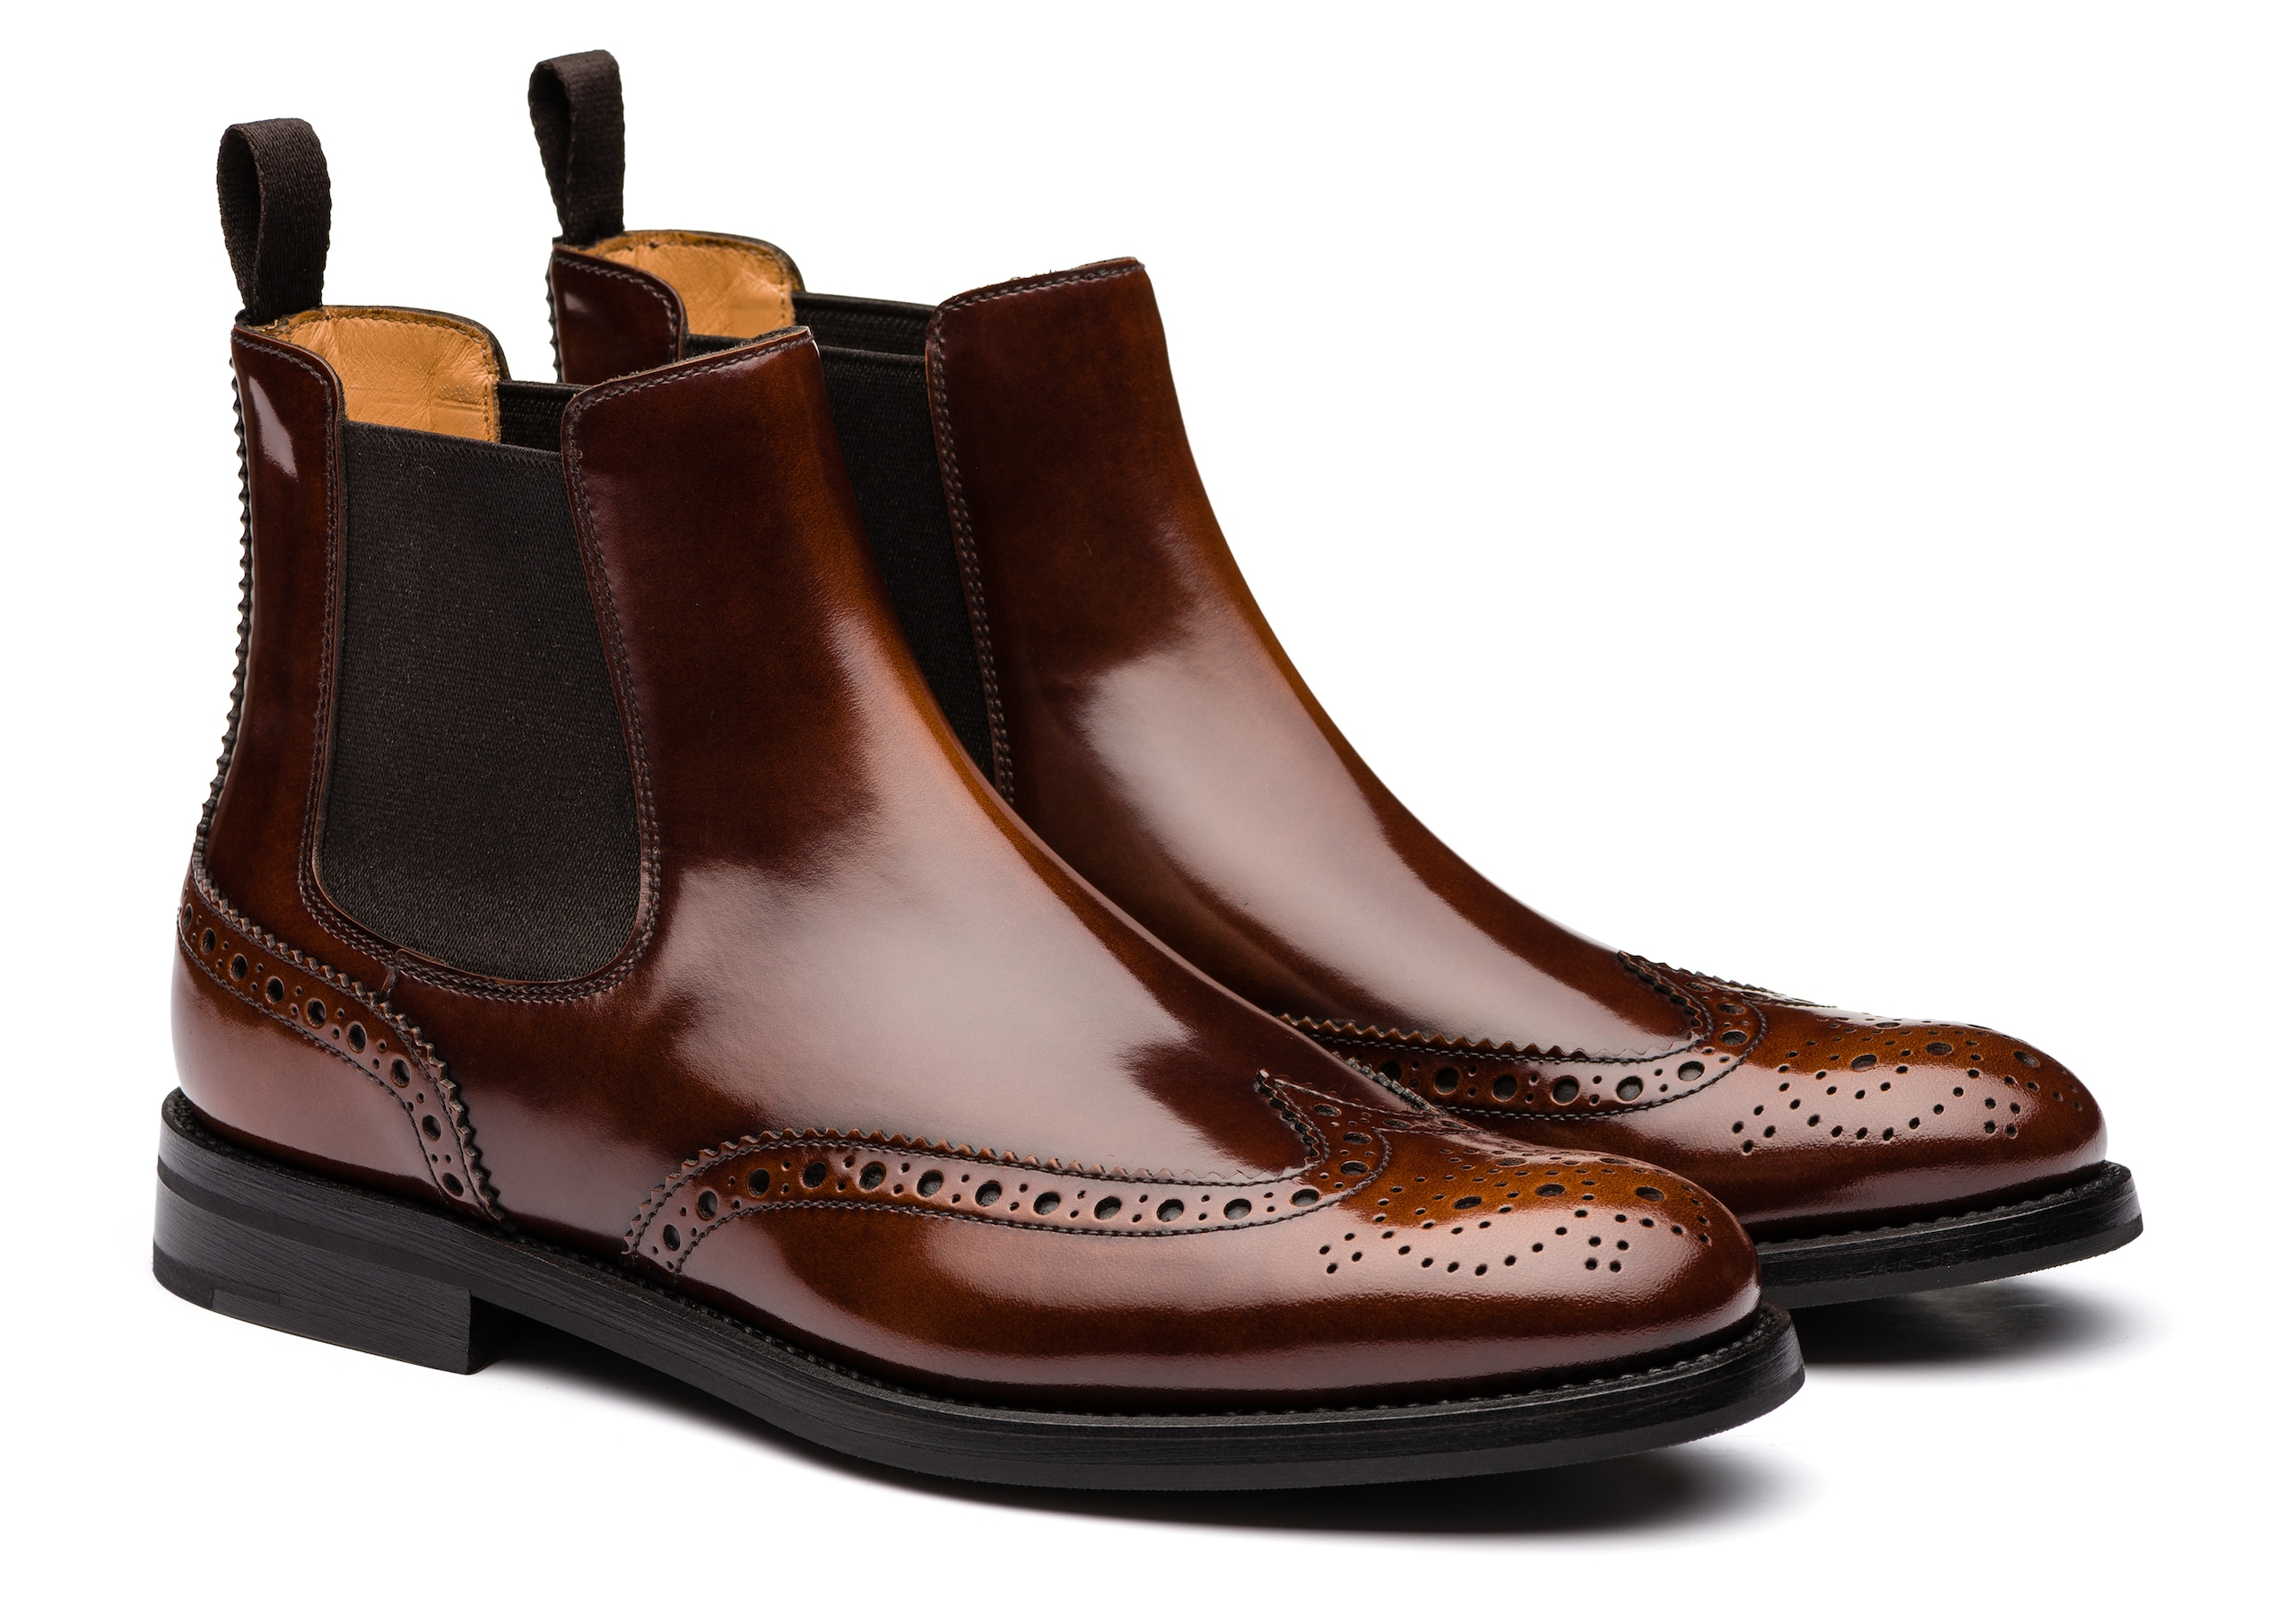 Ketsby wg Church's Stivale Chelsea Brogue in Pelle Lucida Fumè Marrone